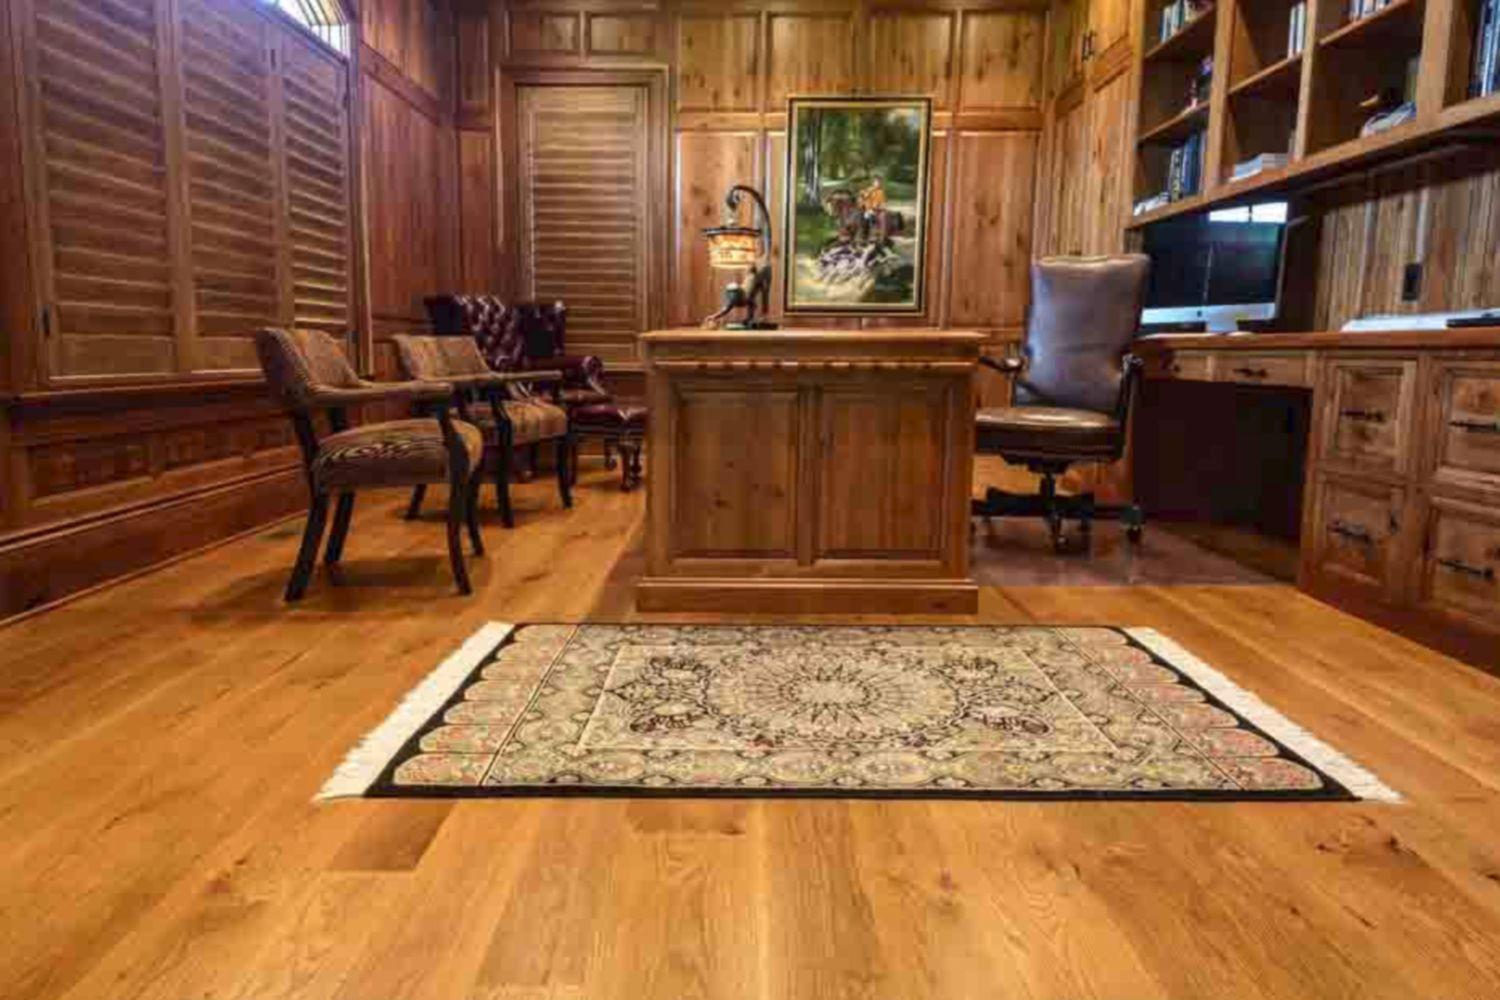 cost of installing hardwood floors home depot of top 5 brands for solid hardwood flooring within the woods company white oak 1500 x 1000 56a49f6d5f9b58b7d0d7e1db